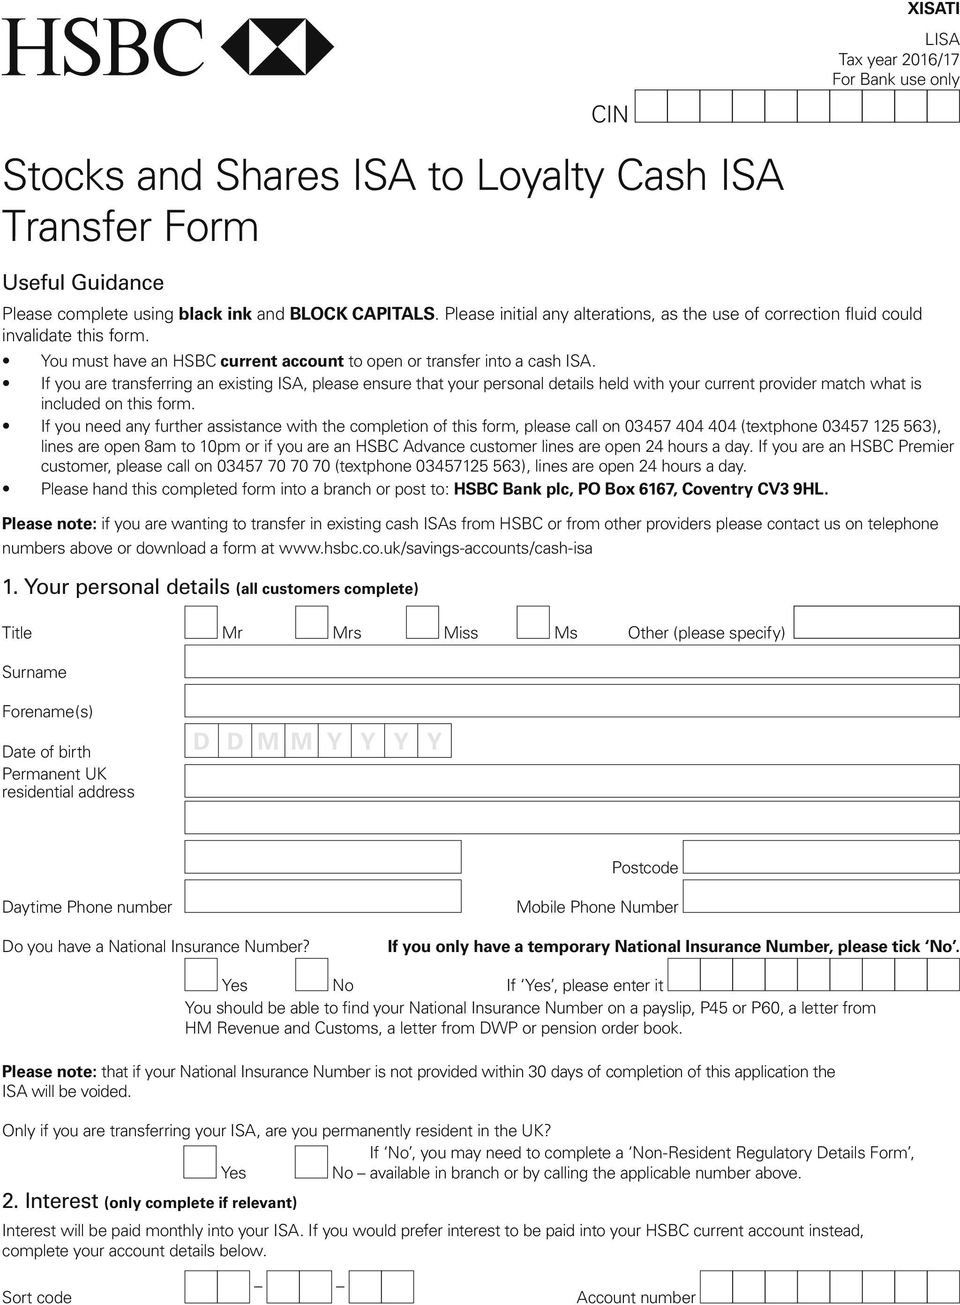 If you are transferring an existing ISA, please ensure that your personal details held with your current provider match what is included on this form.